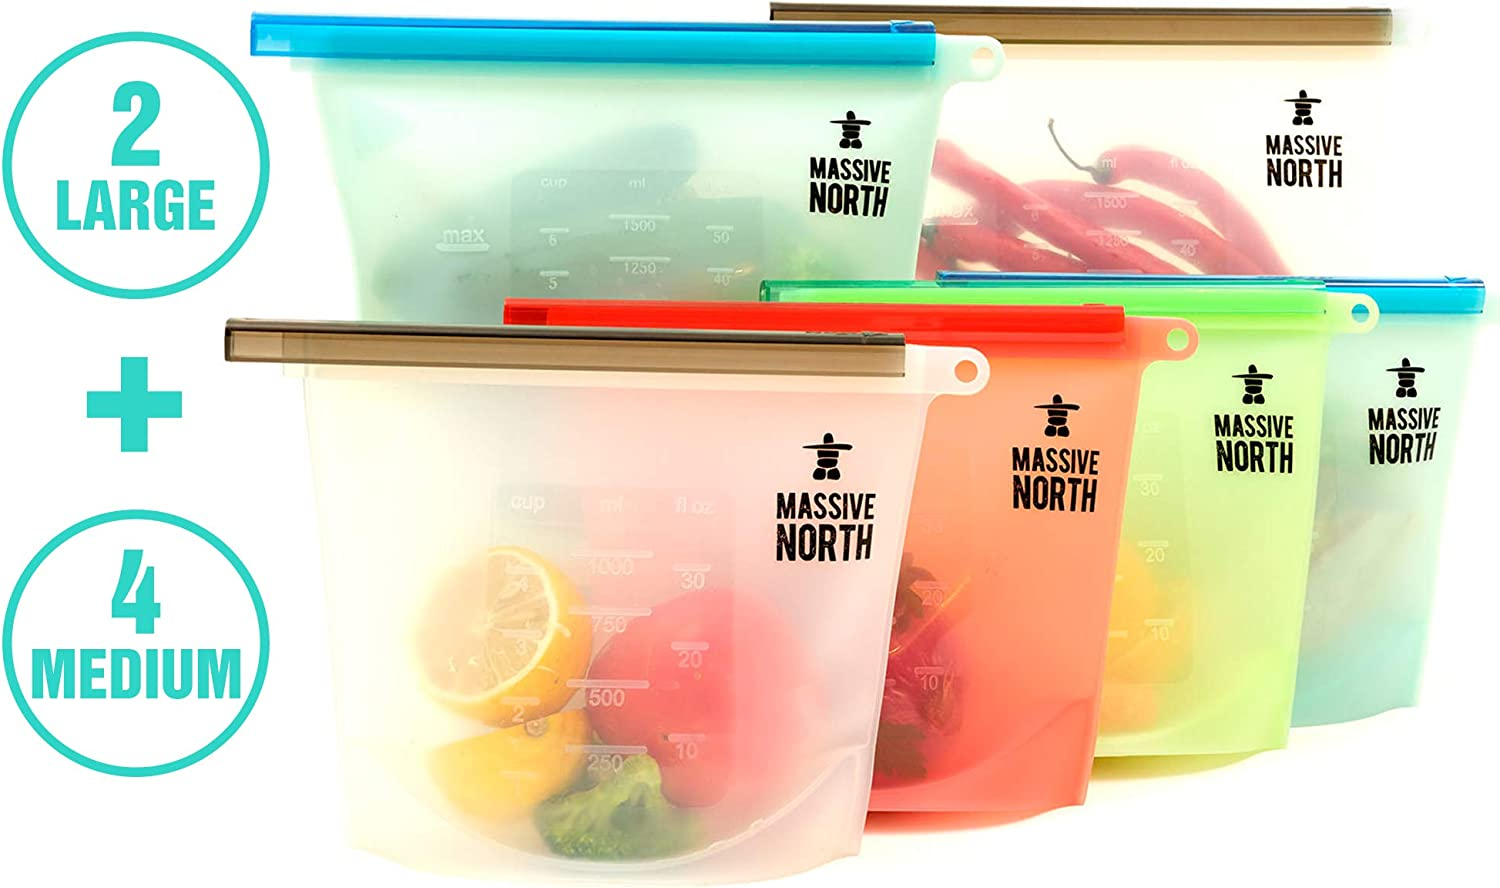 Reusable Silicone Food Storage Bags from Massive North - Home and Camping Food Preservation - Resealable Slide-Bar-Ziplock to Keep Food Fresh - 6 pack - 2 Large 50 oz, 4 Medium 30 oz - Eco Friendly